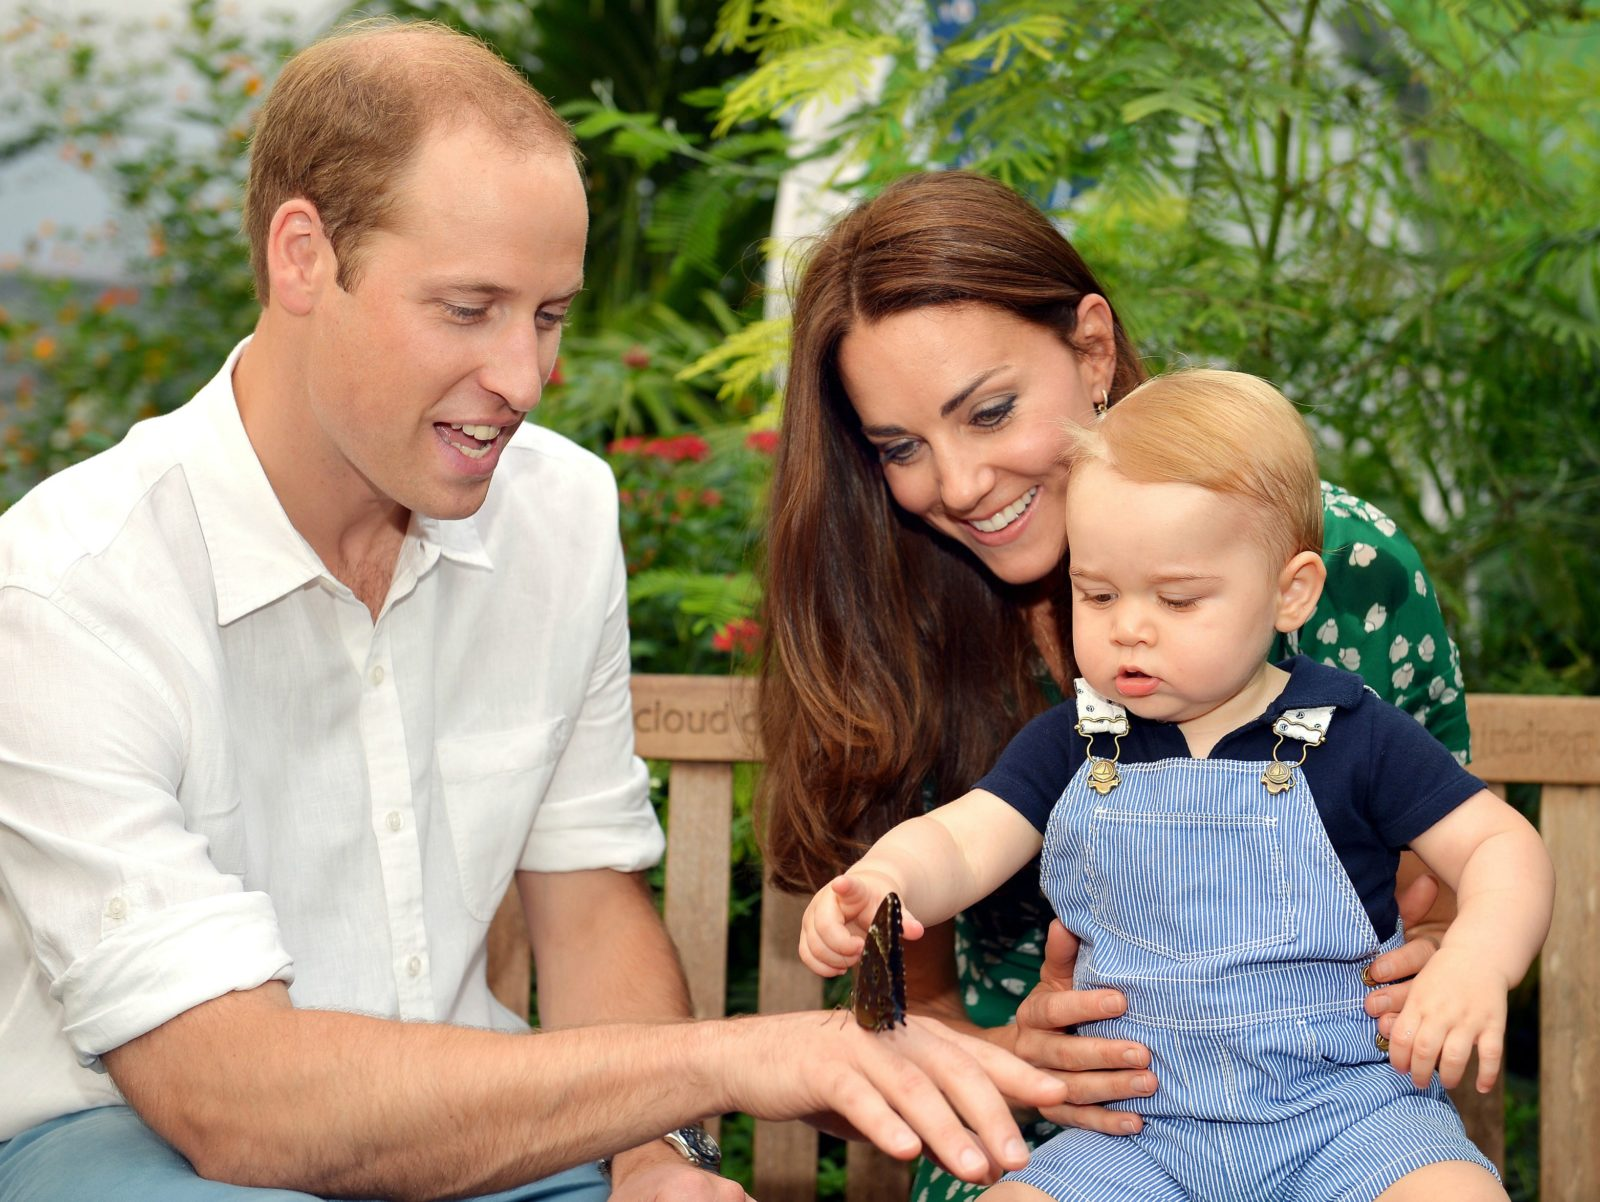 Prince William with his wife Catherine and baby Prince George. Source: Getty.